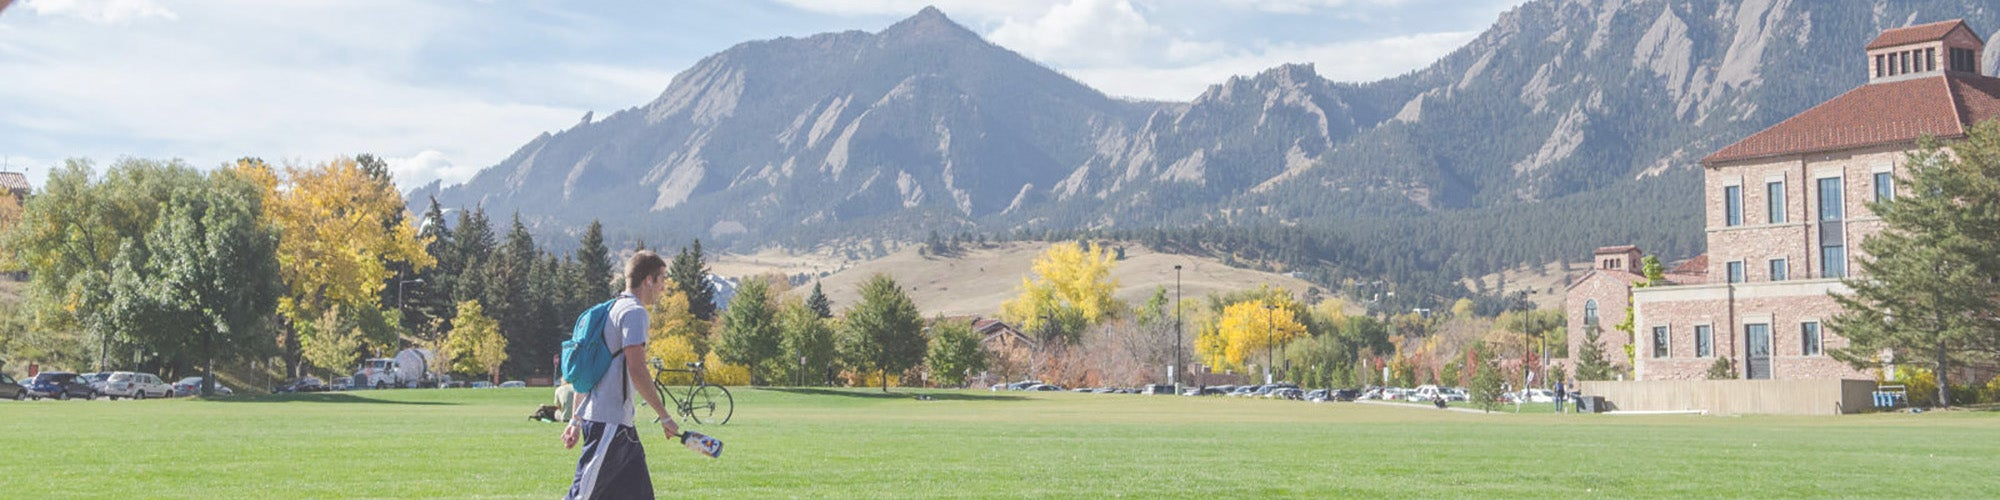 Student walking in front of the flatirons